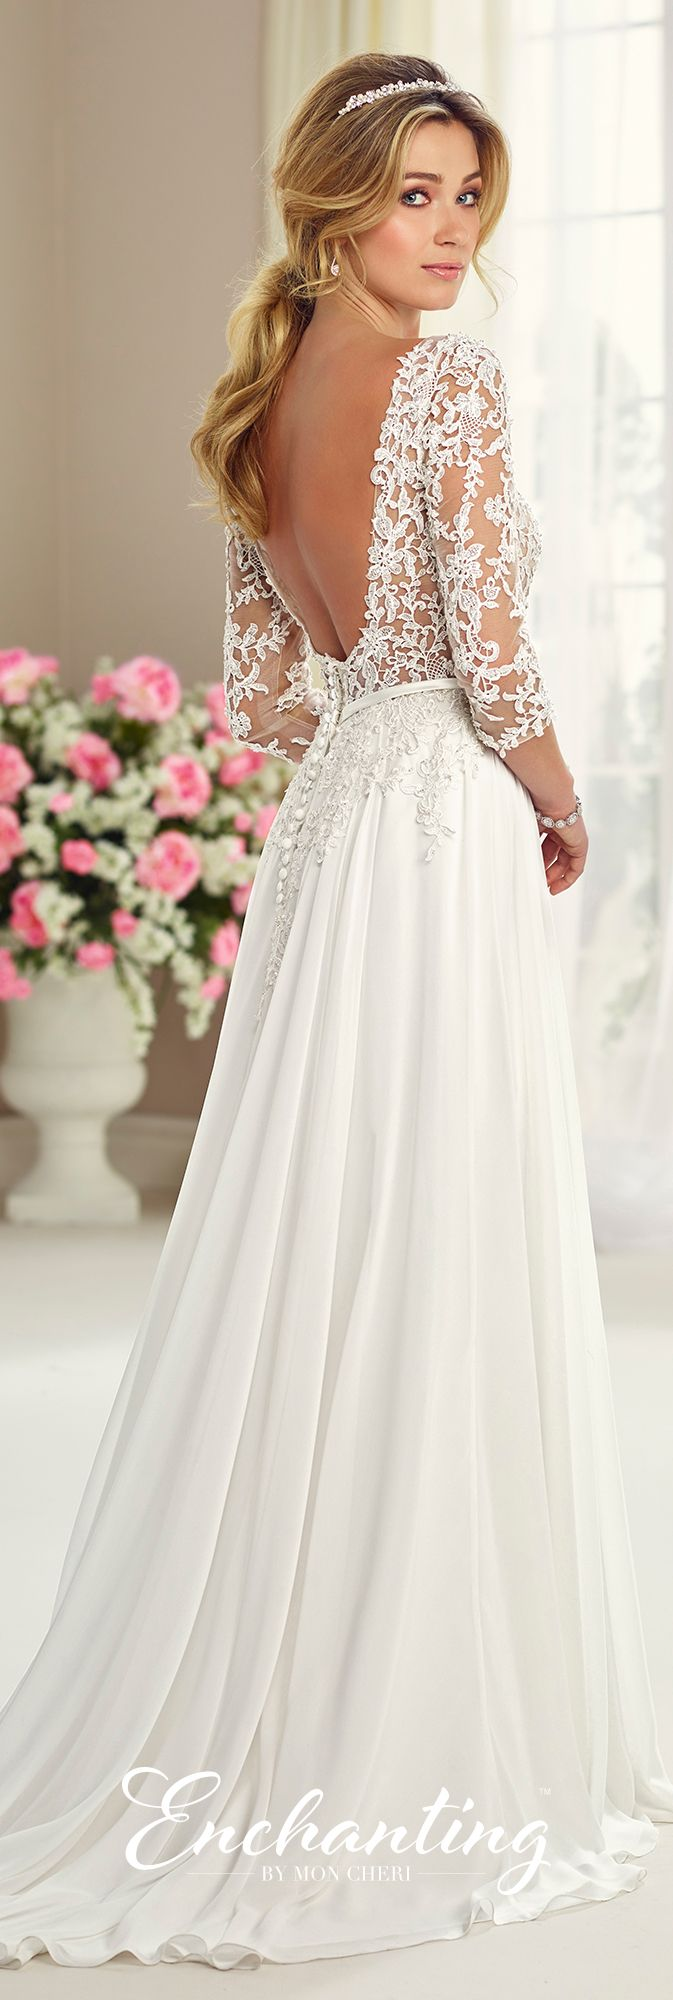 Best 25 wedding dresses ideas on pinterest spring wedding chiffon tulle lace wedding gown enchanting by mon cheri 217108 junglespirit Choice Image